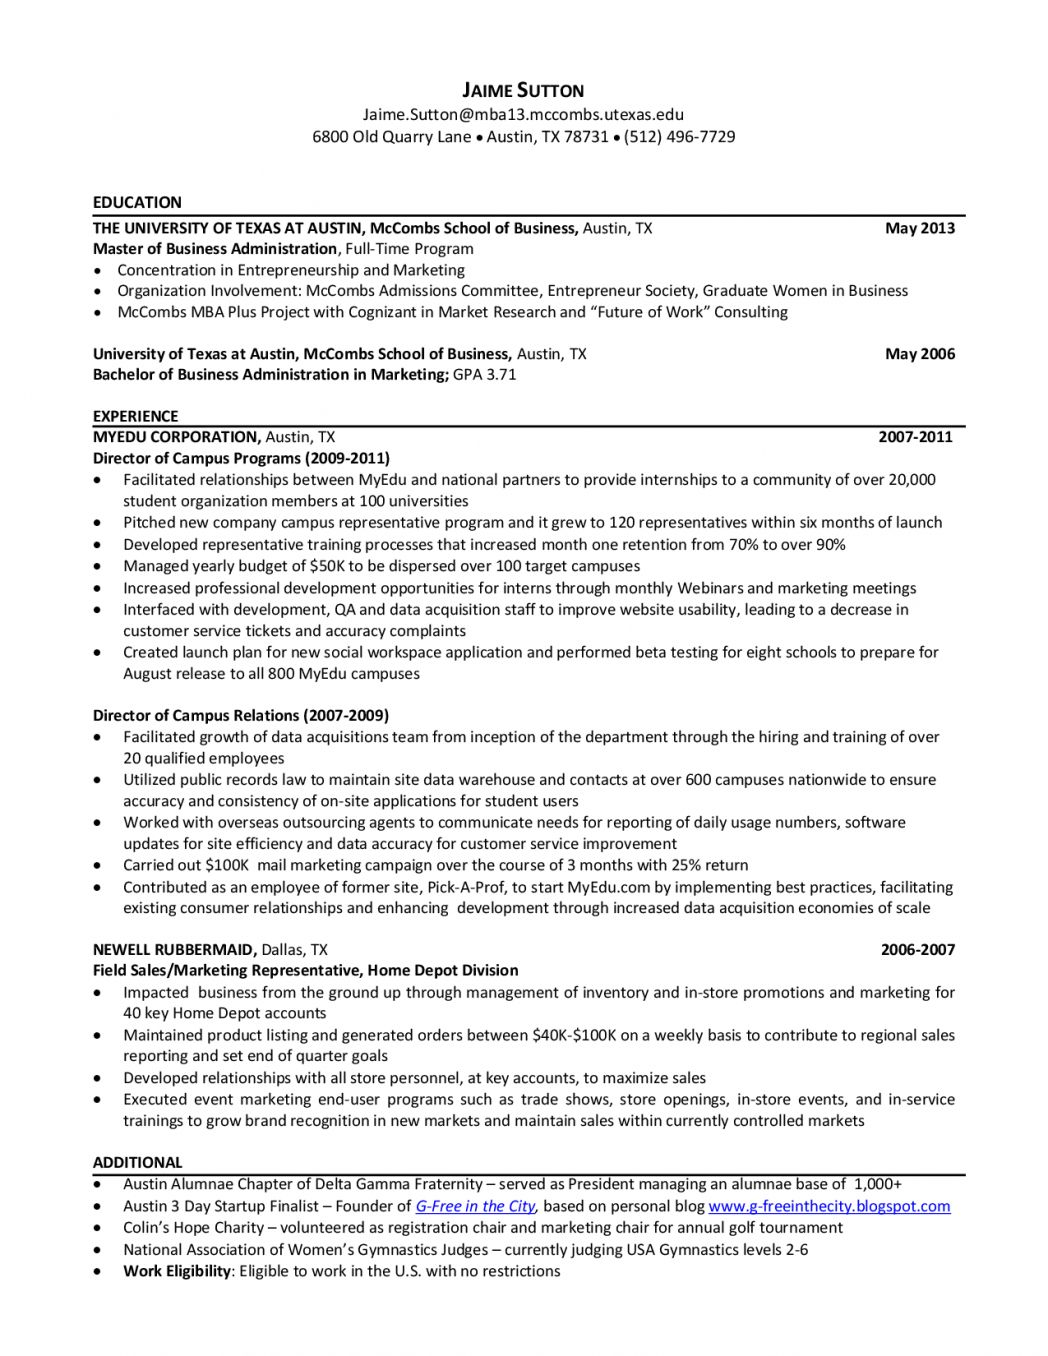 cover letter template mccombs resume format lettering business school engineering project Resume Mccombs Resume Template